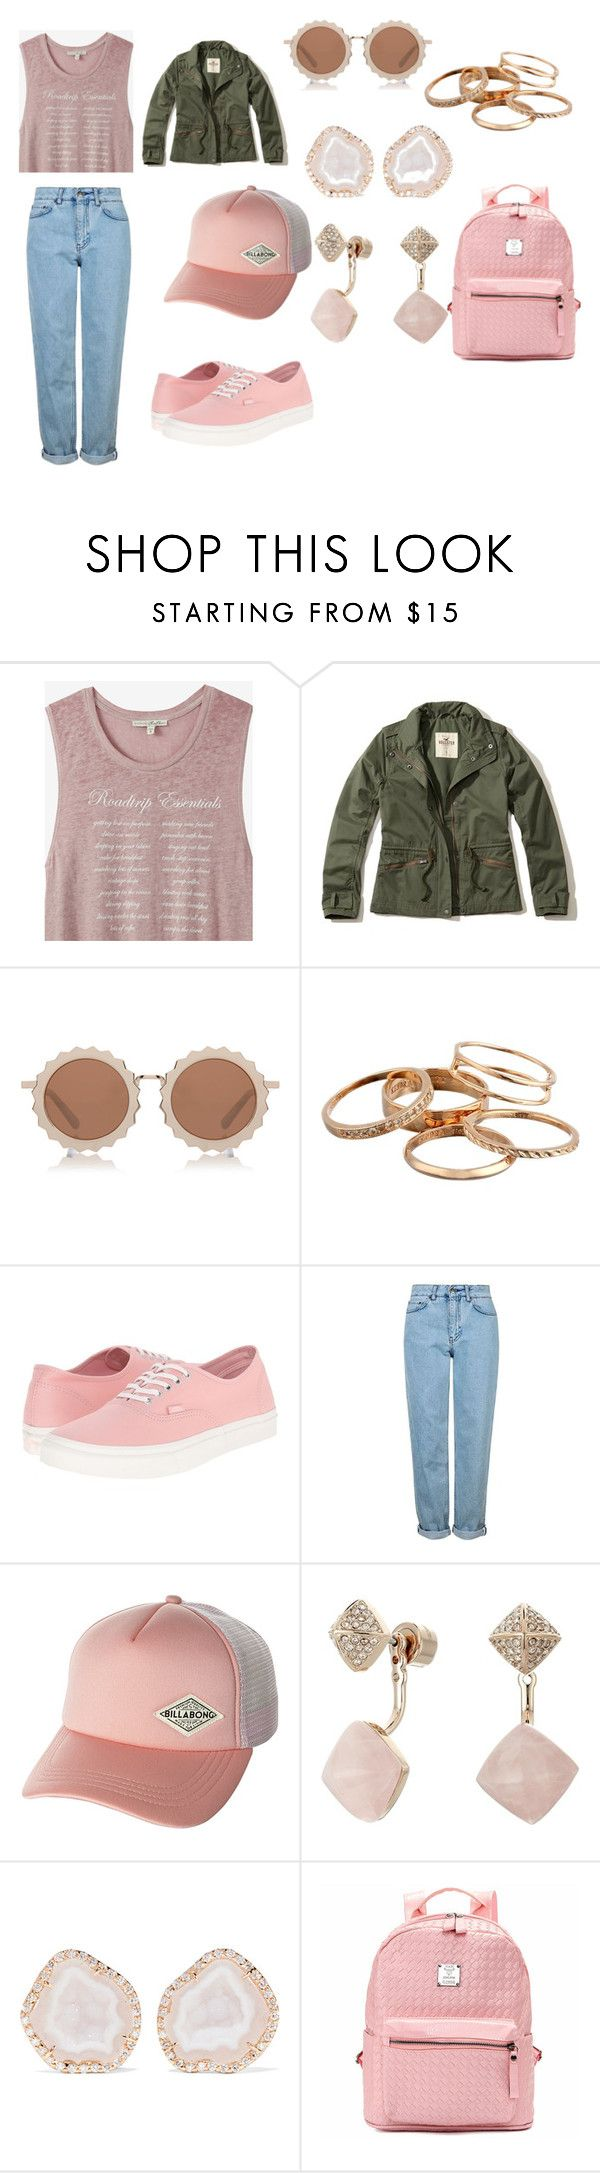 """Just Another Day"" by abigailharris414 on Polyvore featuring Express, Hollister Co., House of Holland, Kendra Scott, Vans, Topshop, Billabong, Michael Kors and Kimberly McDonald"